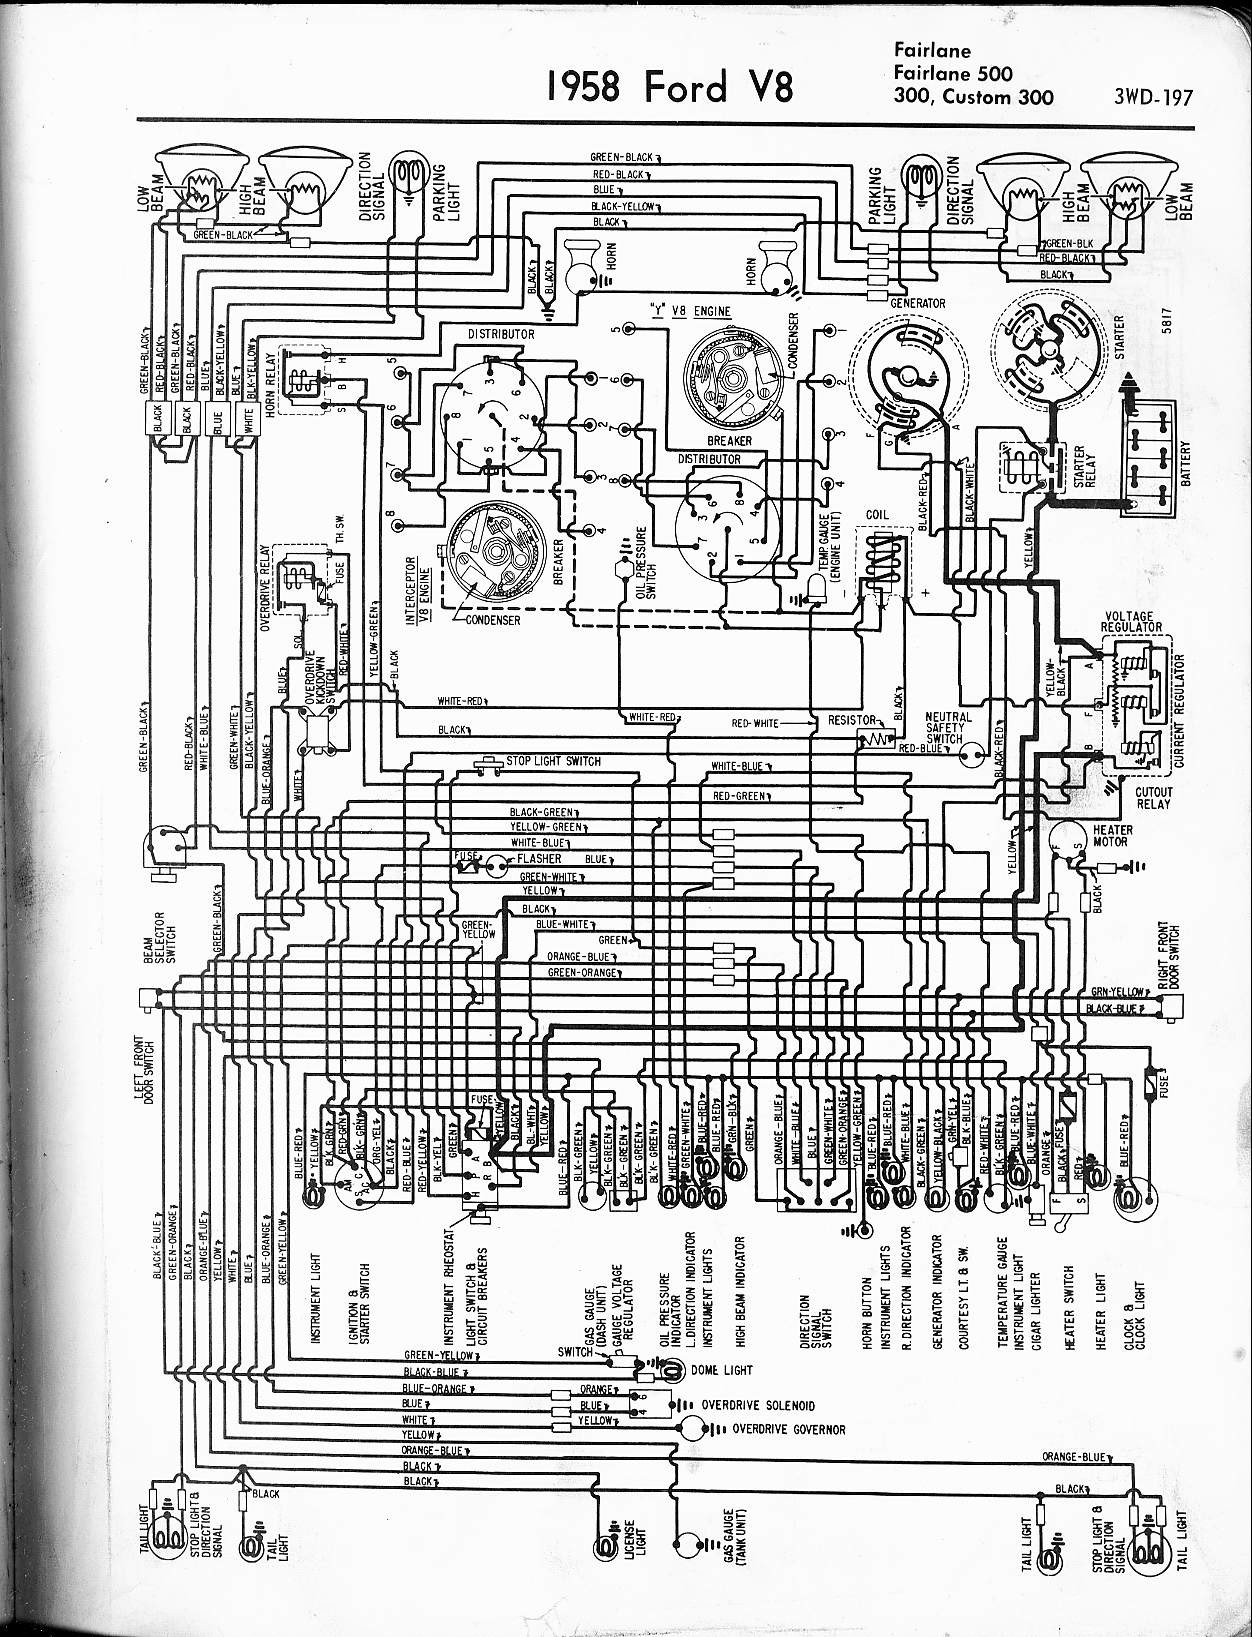 1955 Ford F100 Wiring - Engine Wiring Diagram F Wiring Harness Complete on